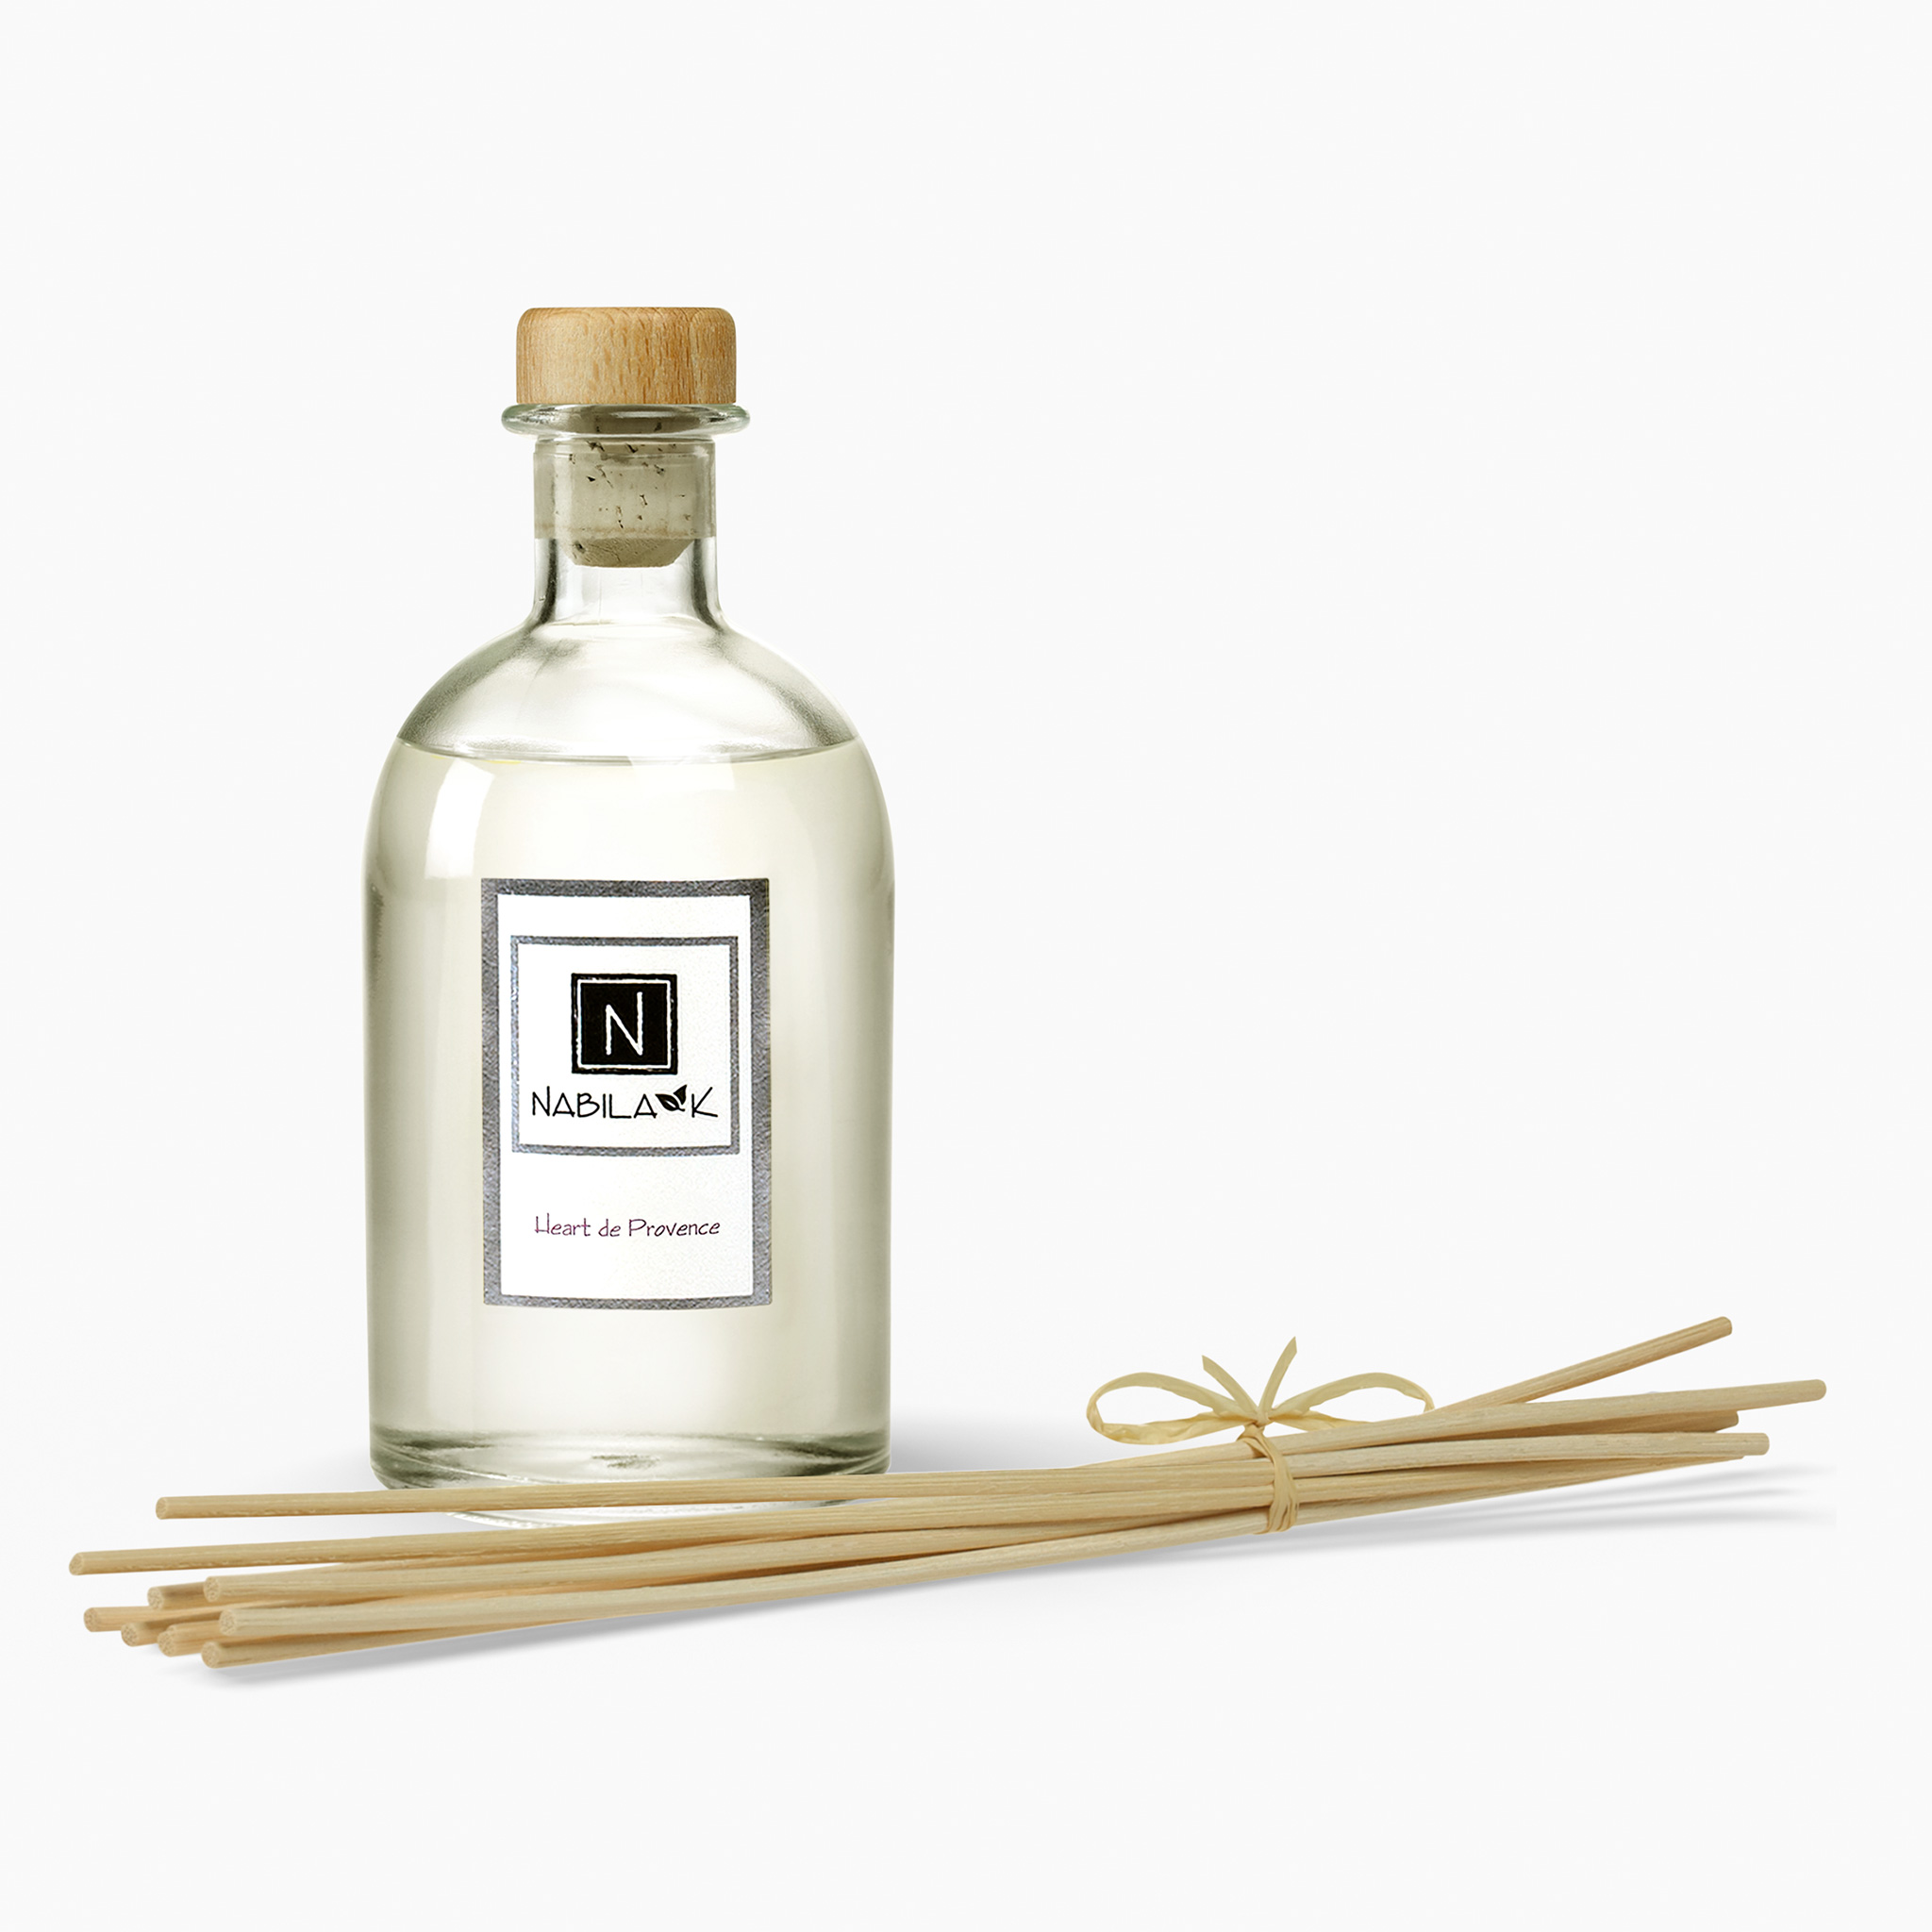 1 Bottle of Nabila K's Heart de Provence Diffuser with Reeds